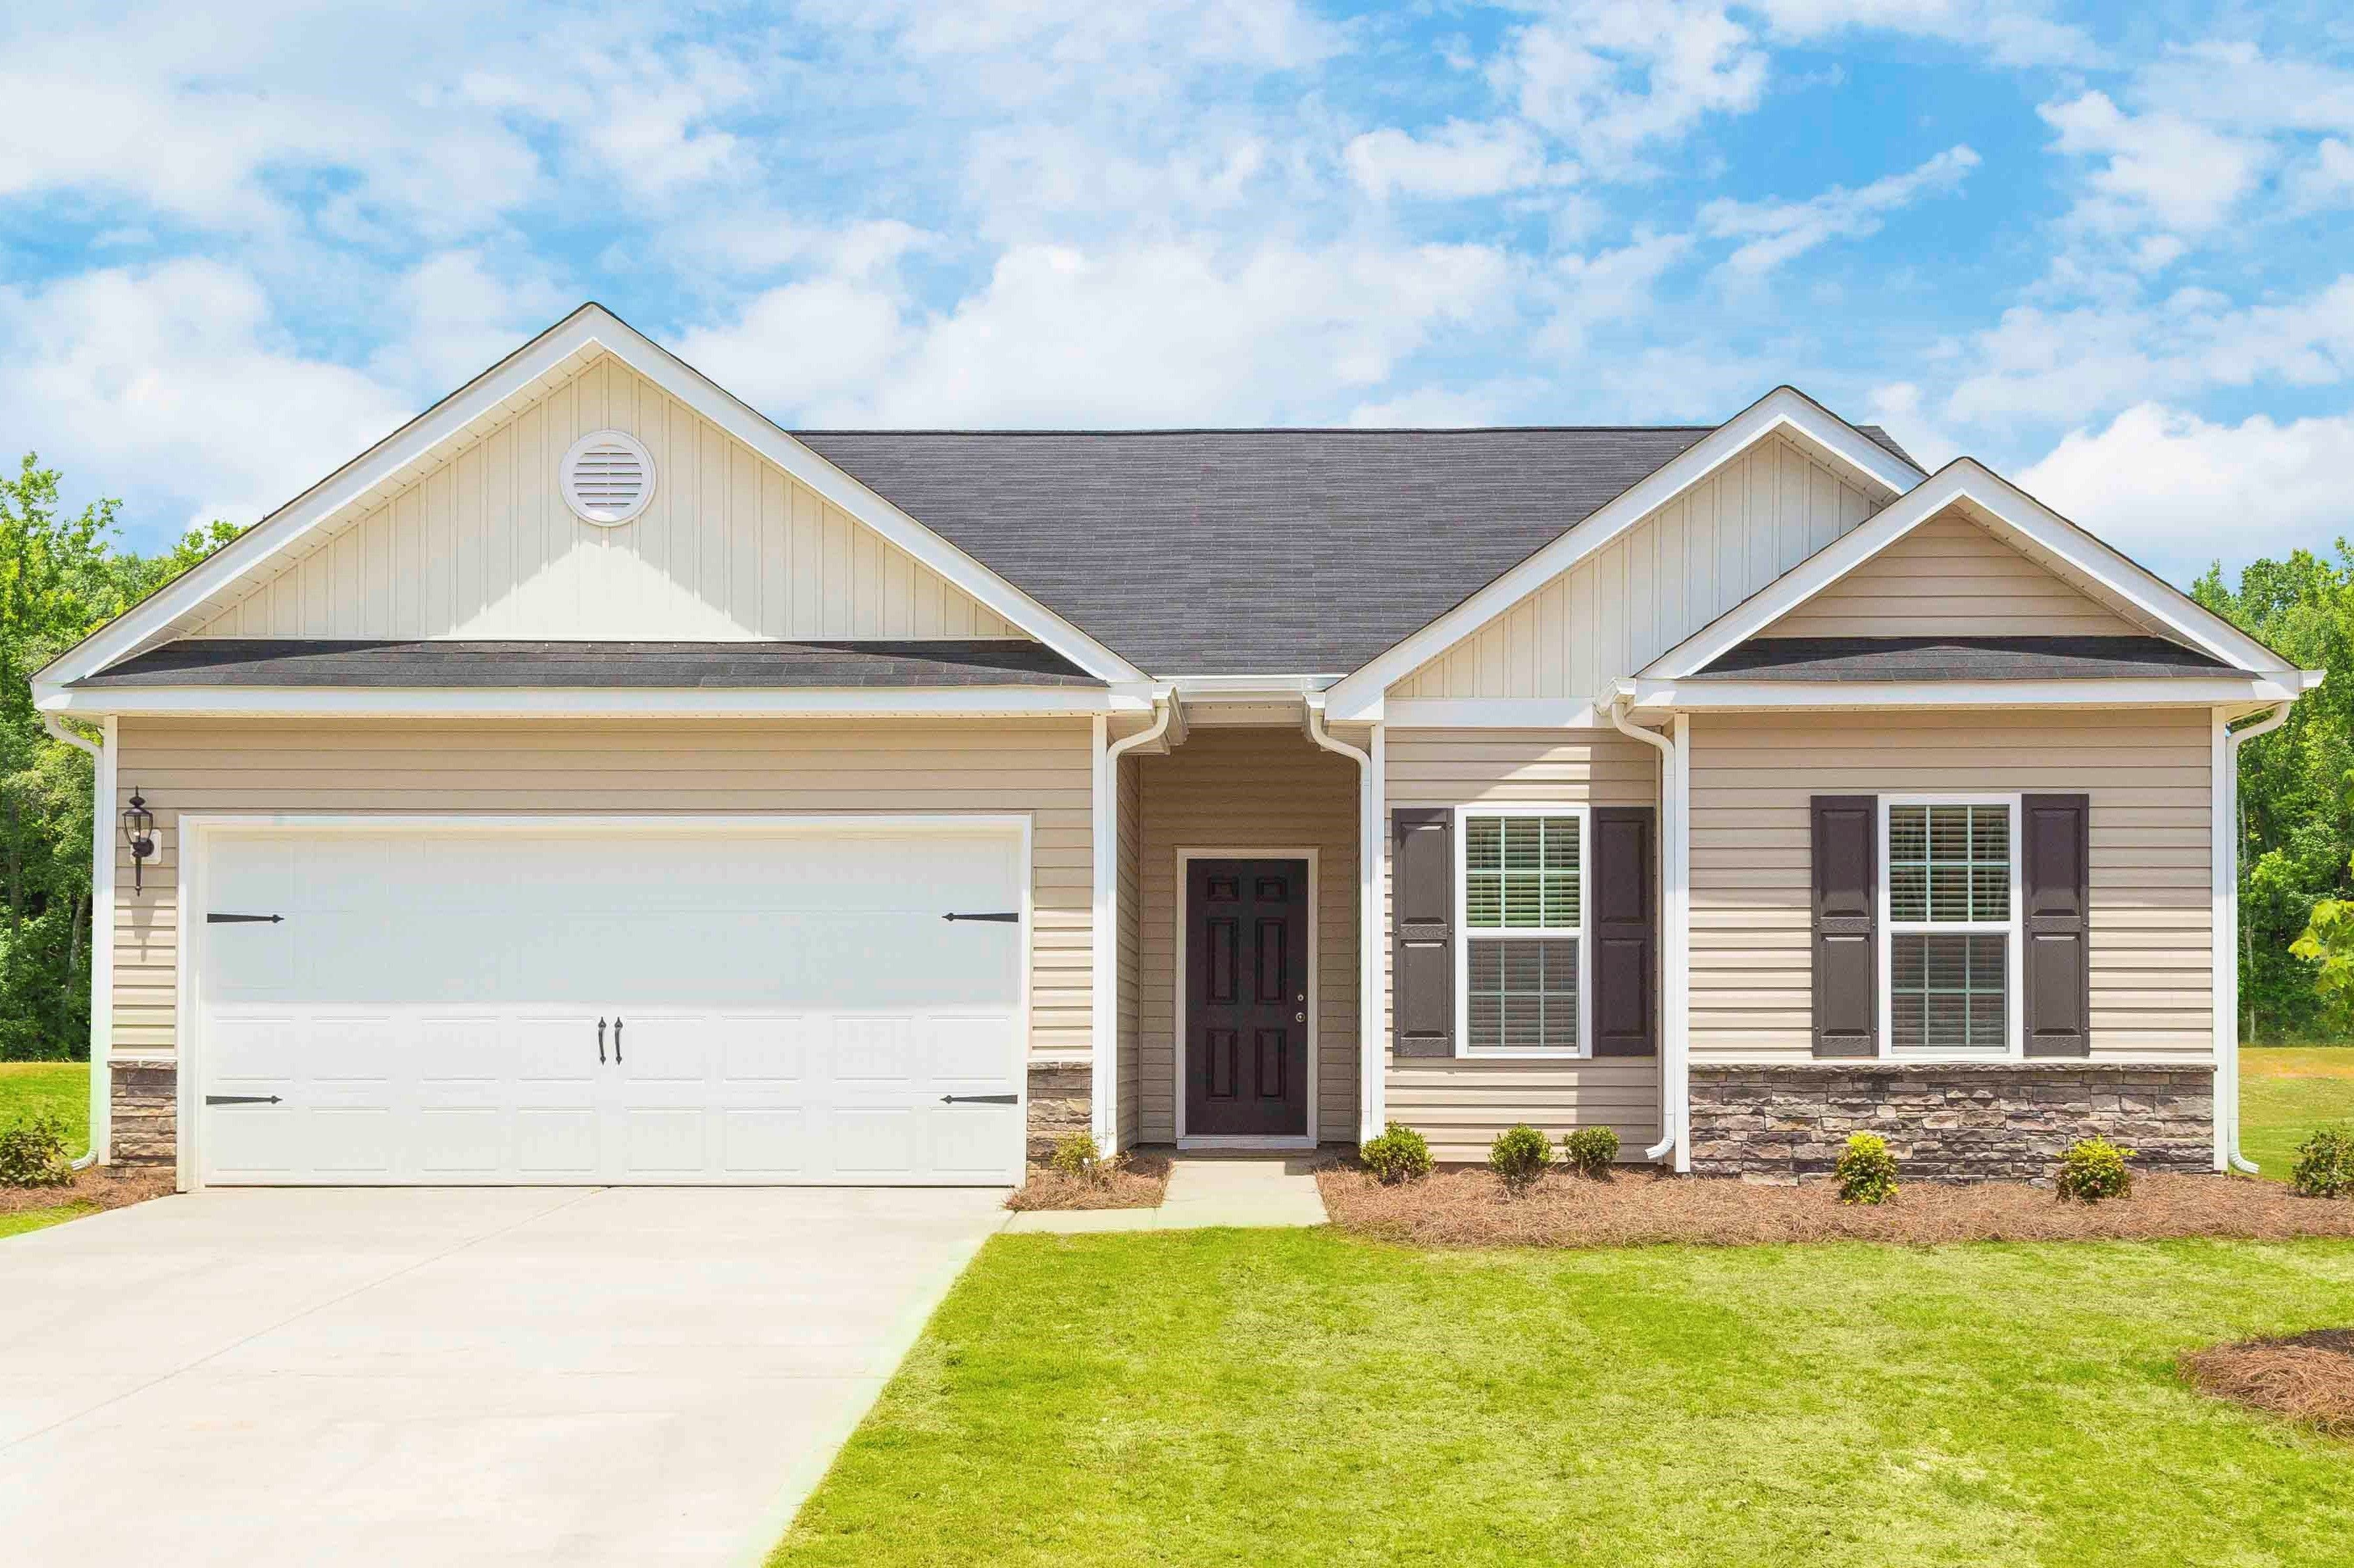 Hot deals lower prices new homes in charlotte nc for Cost of building a house in nc